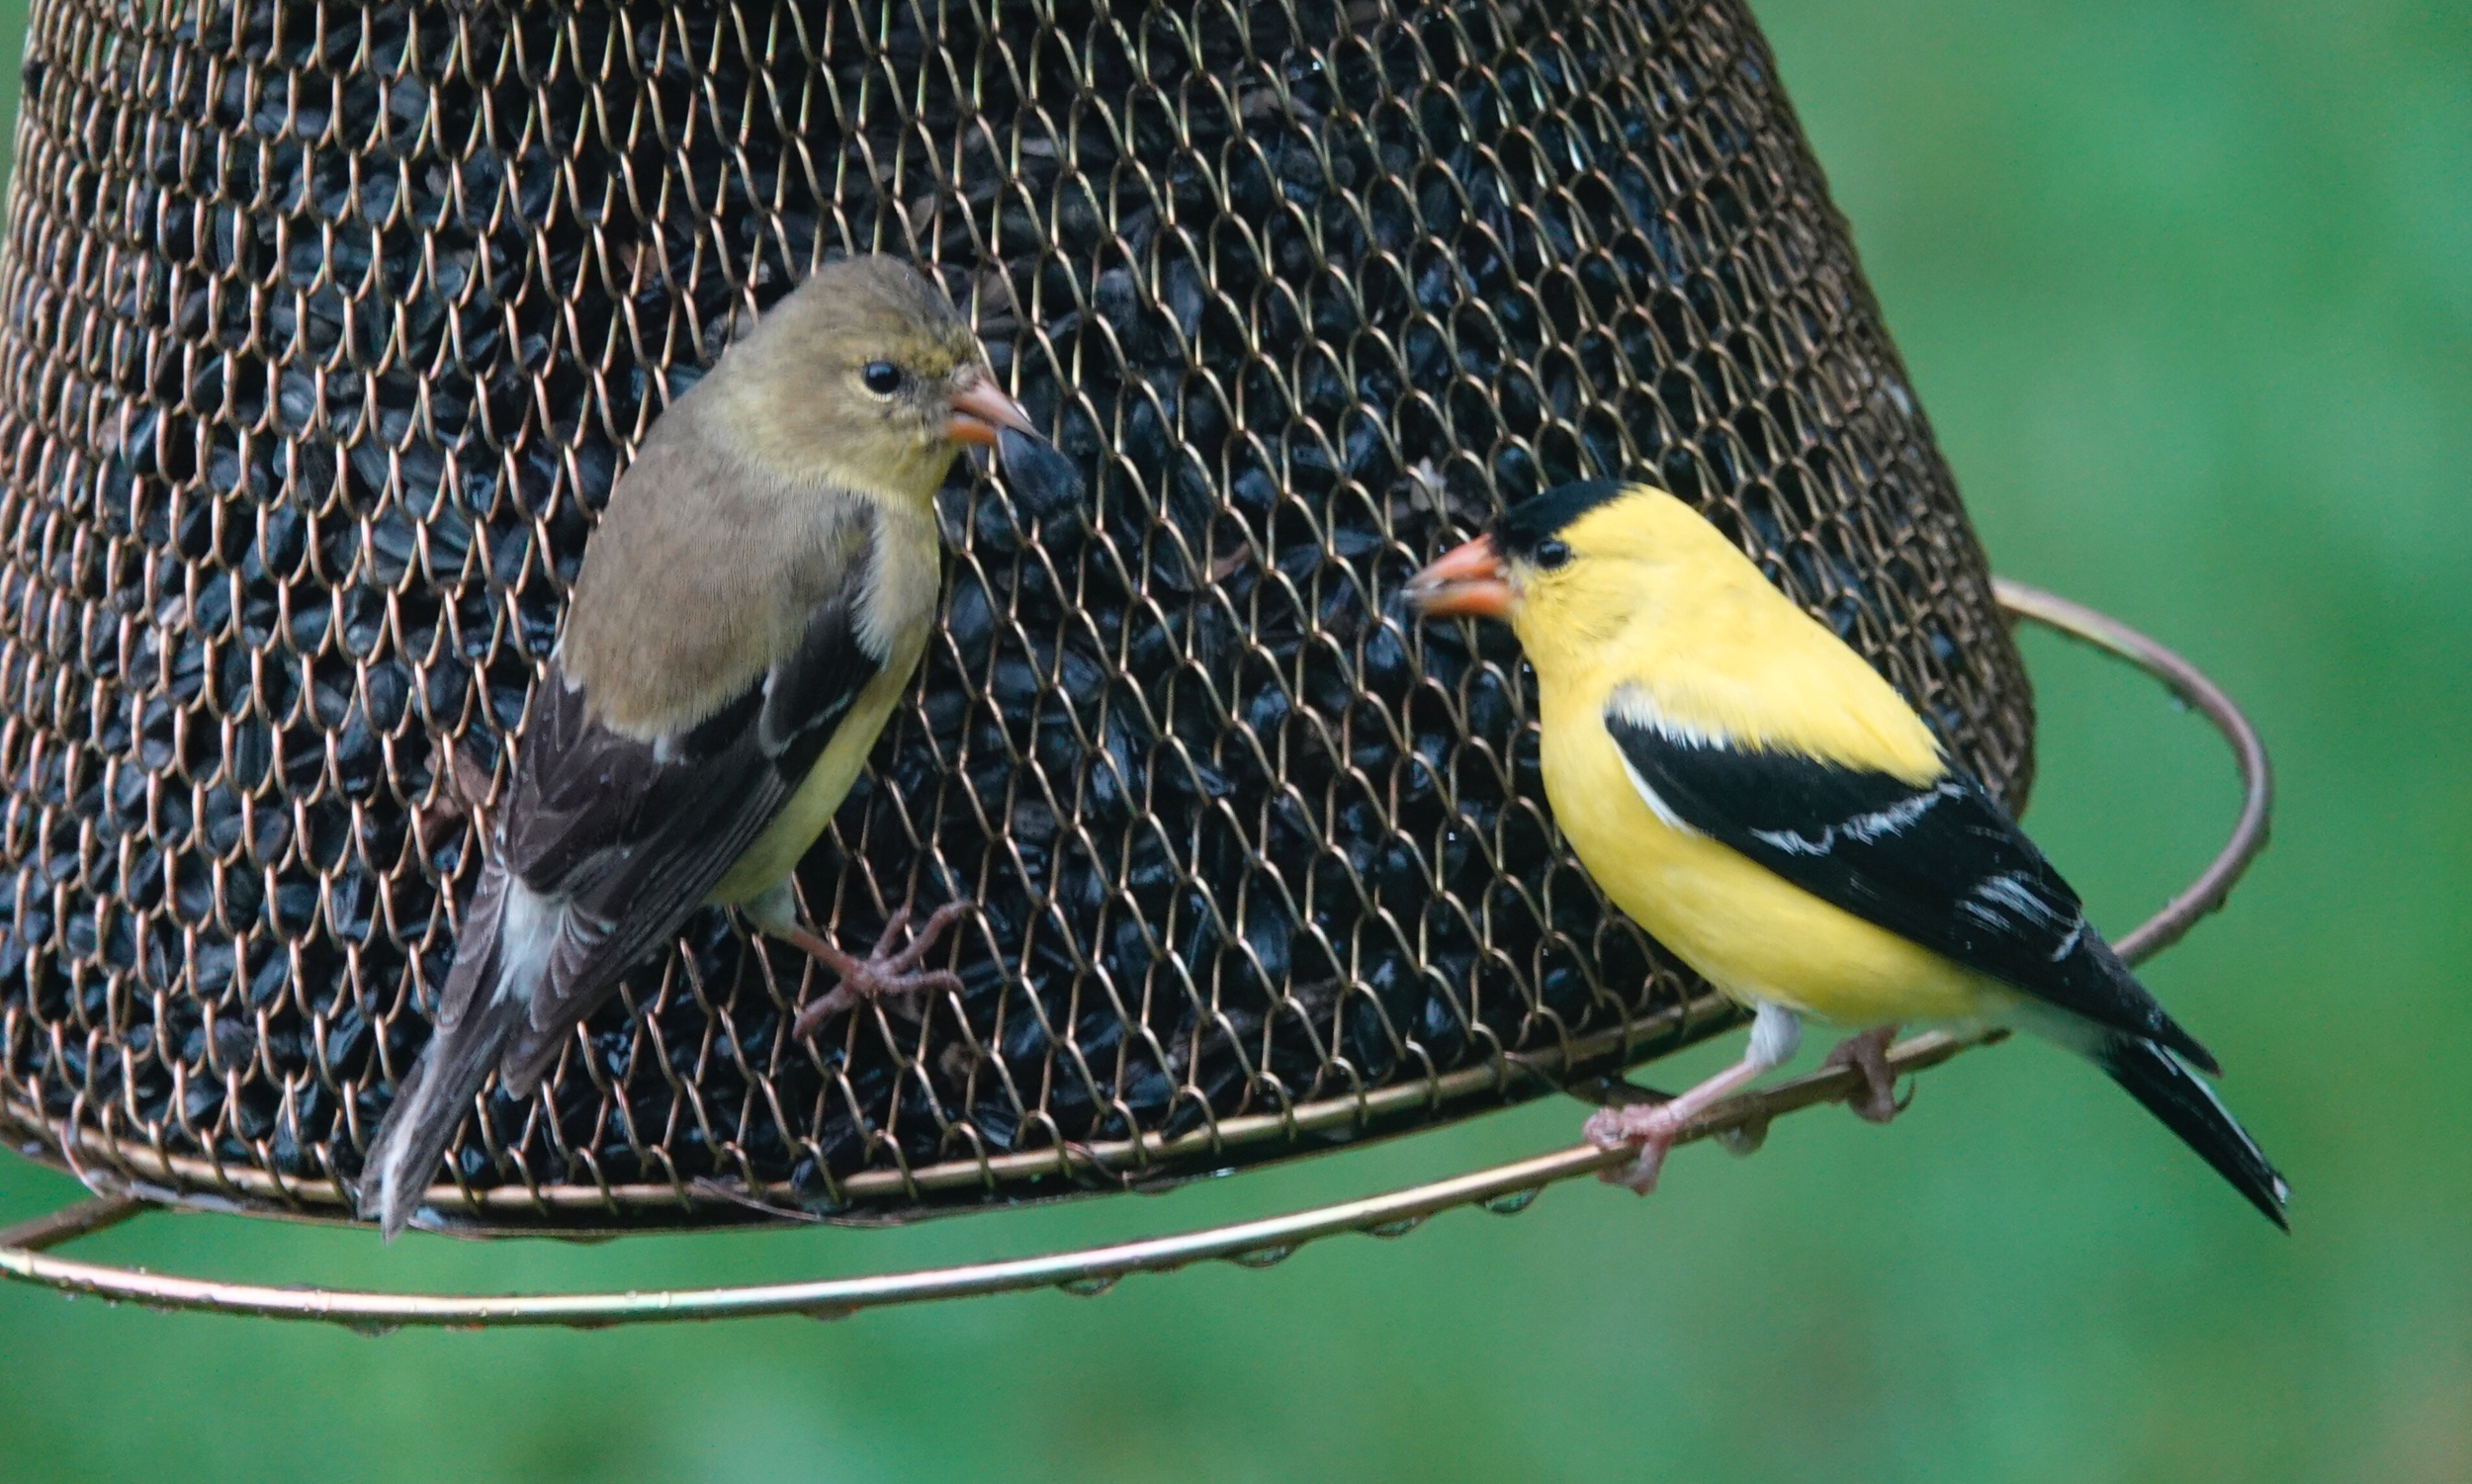 The goldfinches came for lunch, stayed for dinner.